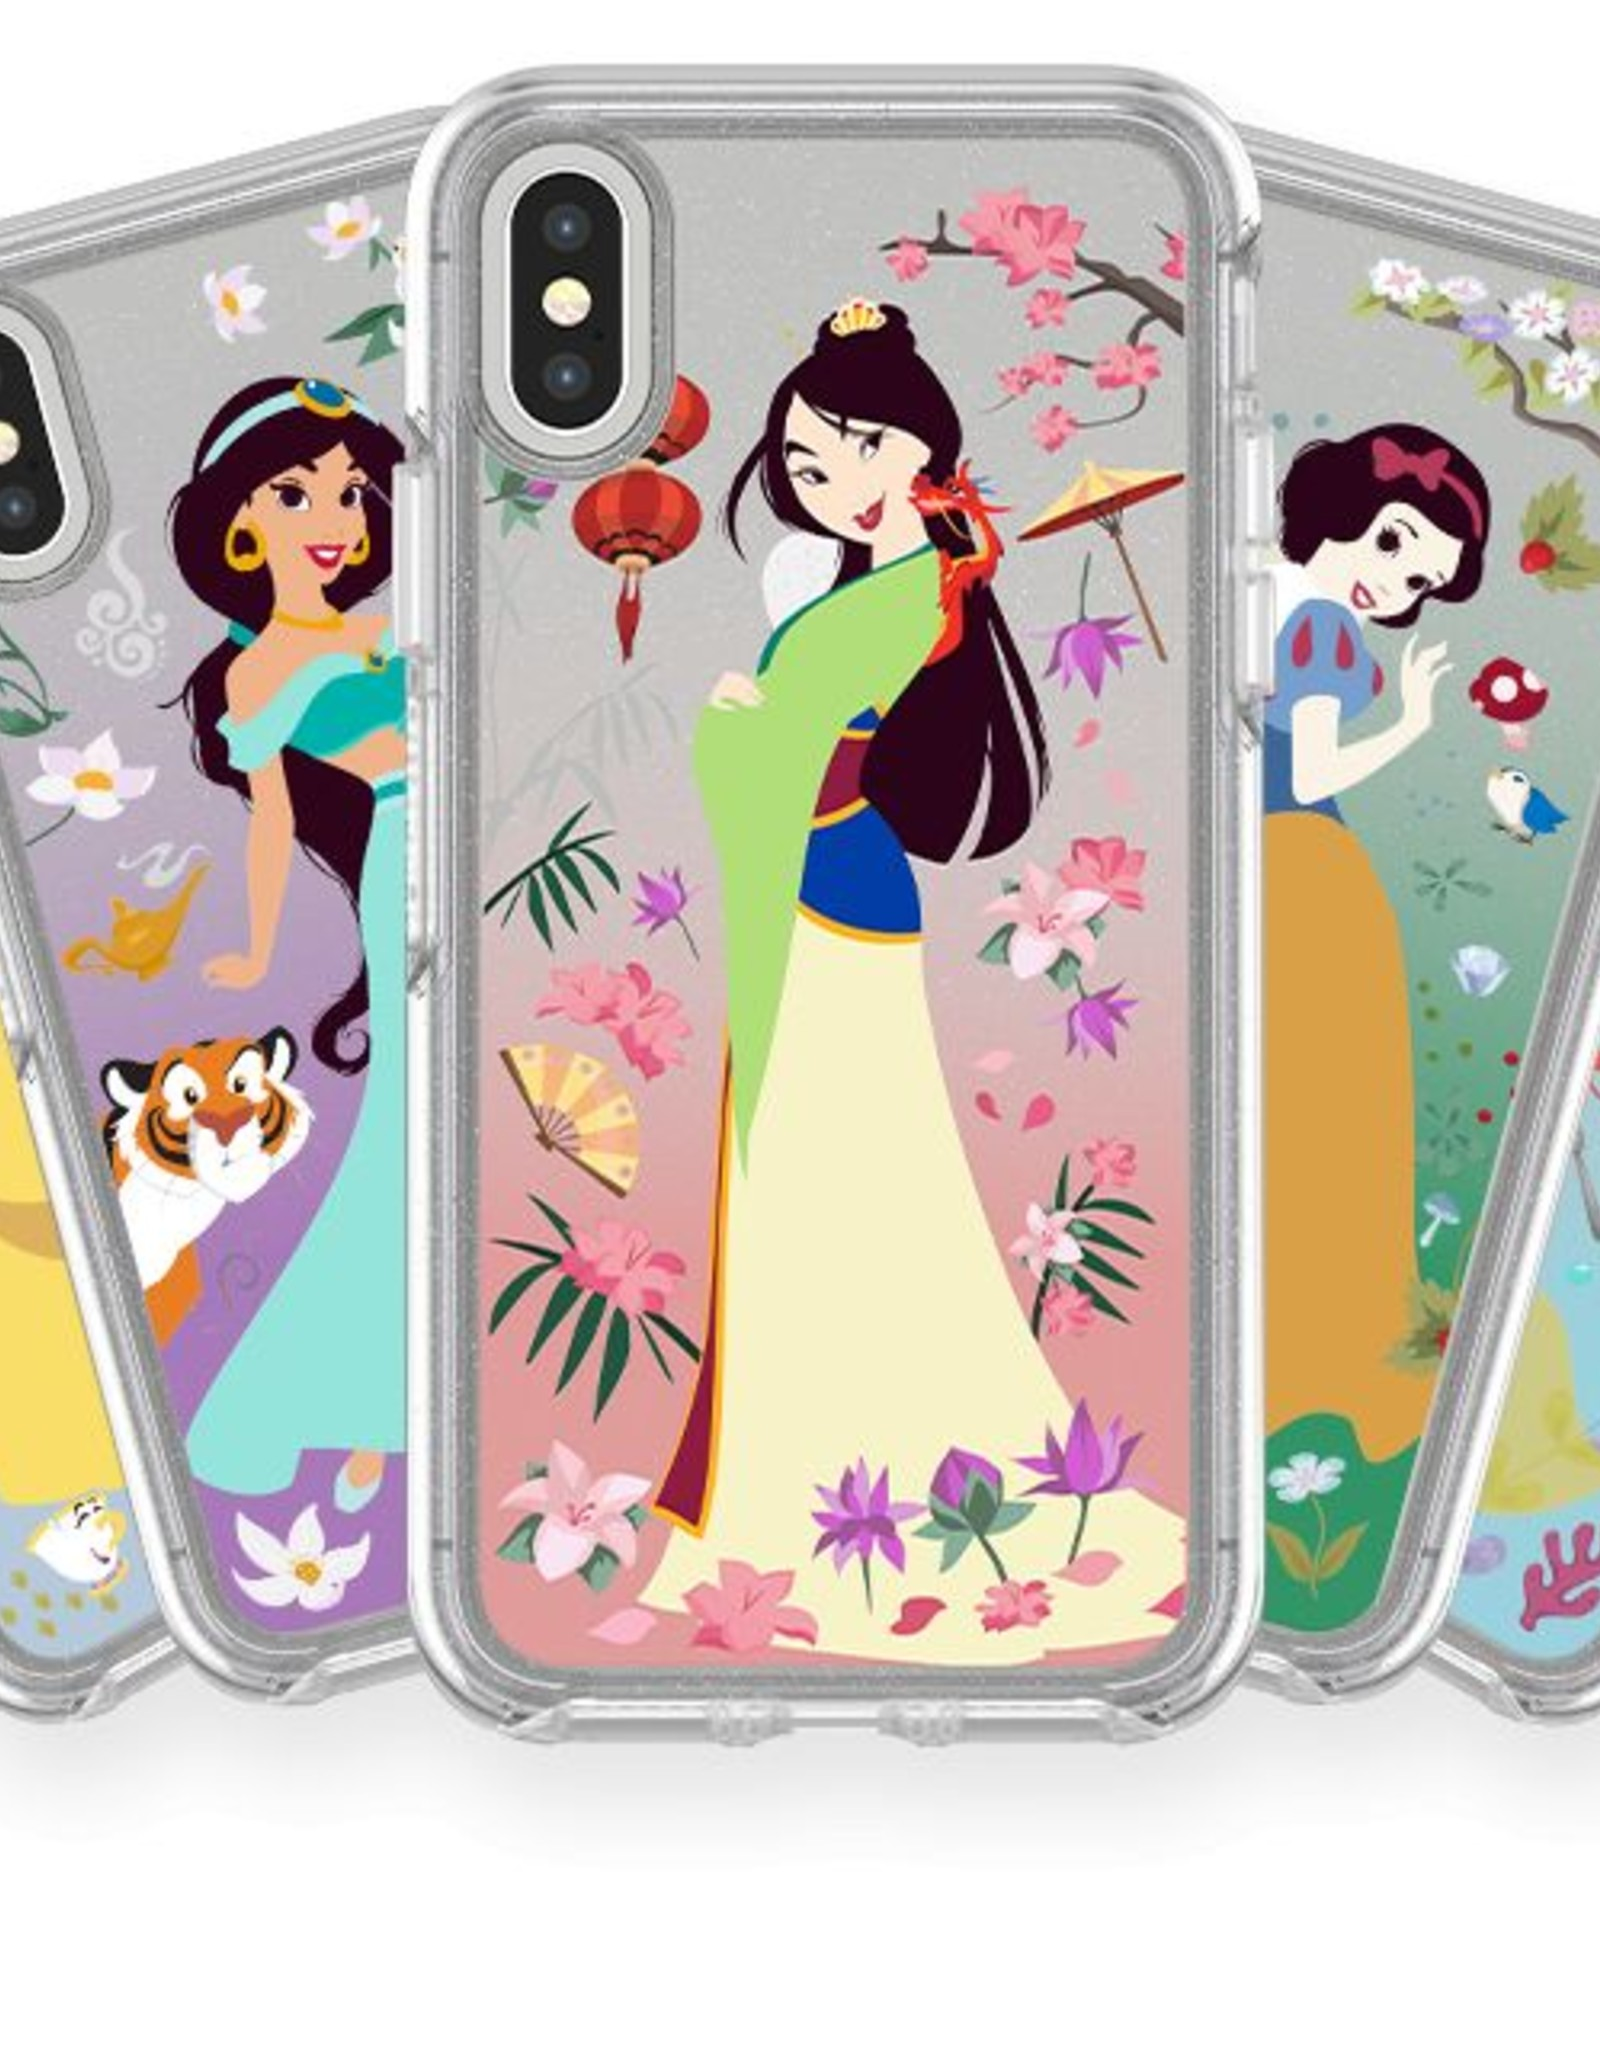 Otterbox OtterBox | iPhone X/Xs Oasis of Independence (Jasmine) Symmetry Disney Series Case | 15-03172